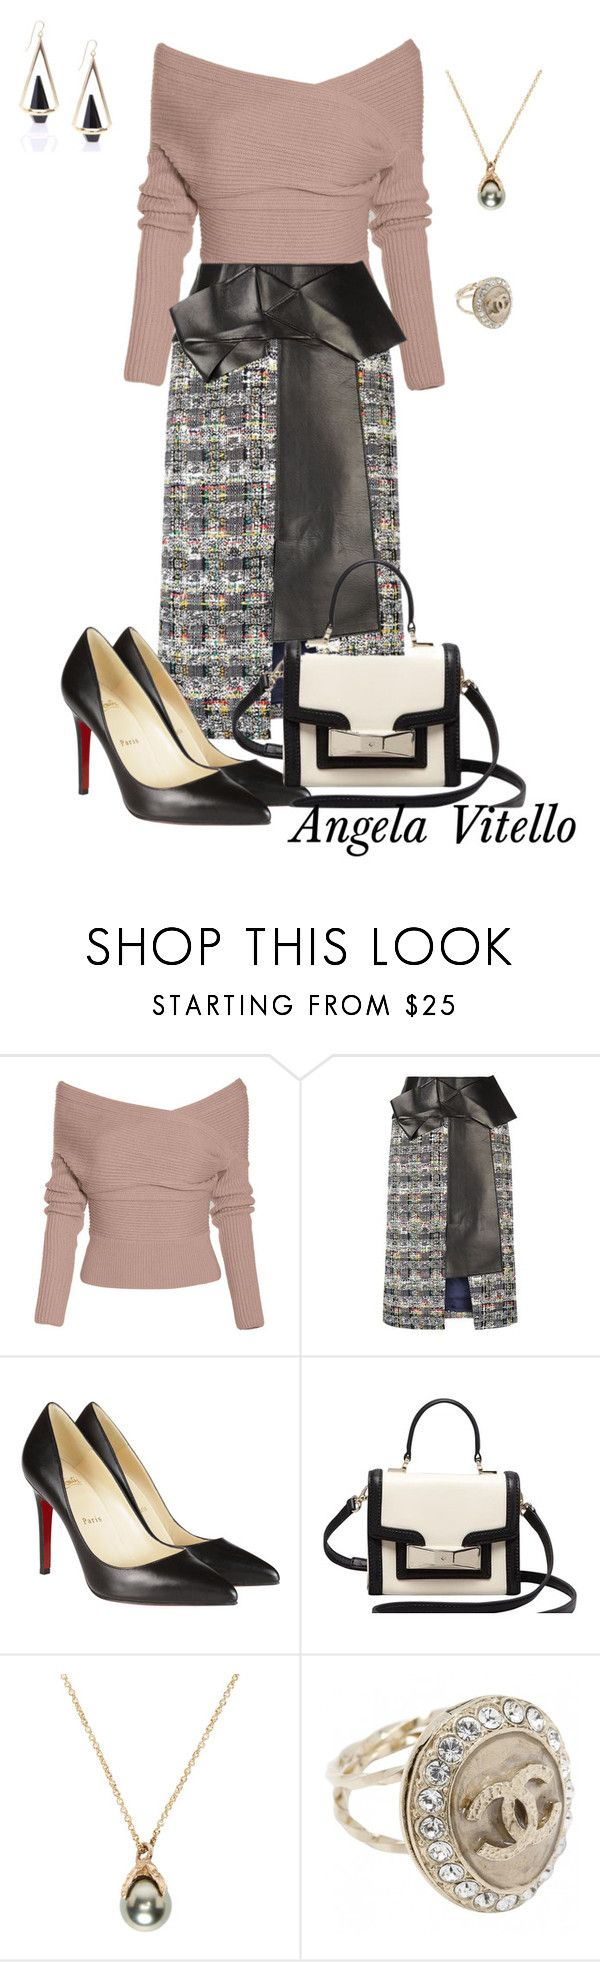 """""""Untitled #673"""" by angela-vitello on Polyvore featuring Alexander McQueen, Christian Louboutin, Kate Spade, Pearls Before Swine, Chanel, women's clothing, women, female, woman and misses"""